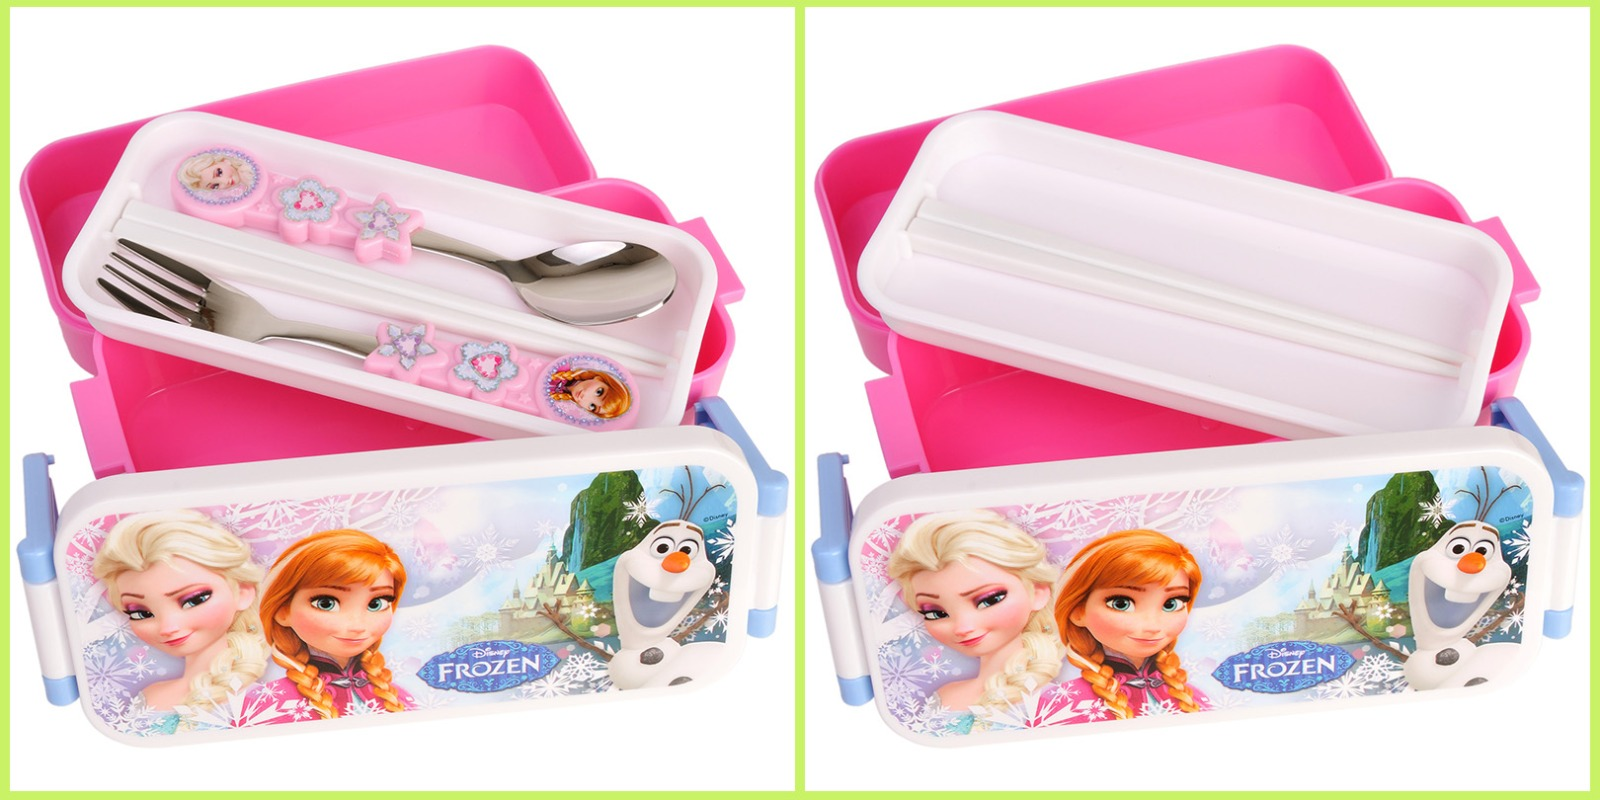 disney frozen lunch box kids girl school cute bento w fork spoon food contai. Black Bedroom Furniture Sets. Home Design Ideas